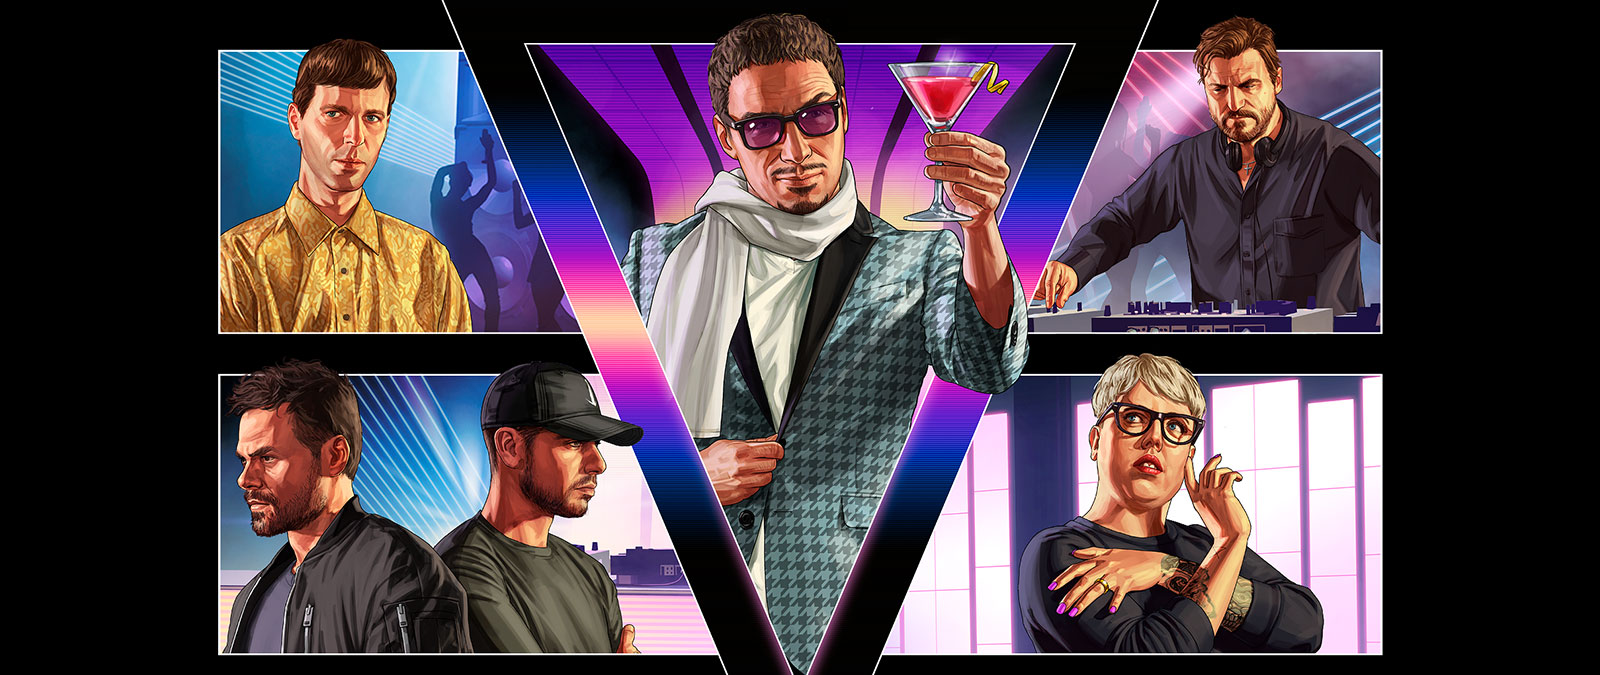 Grand Theft Auto Online After Hours, colagem de diversas personagens numa discoteca.